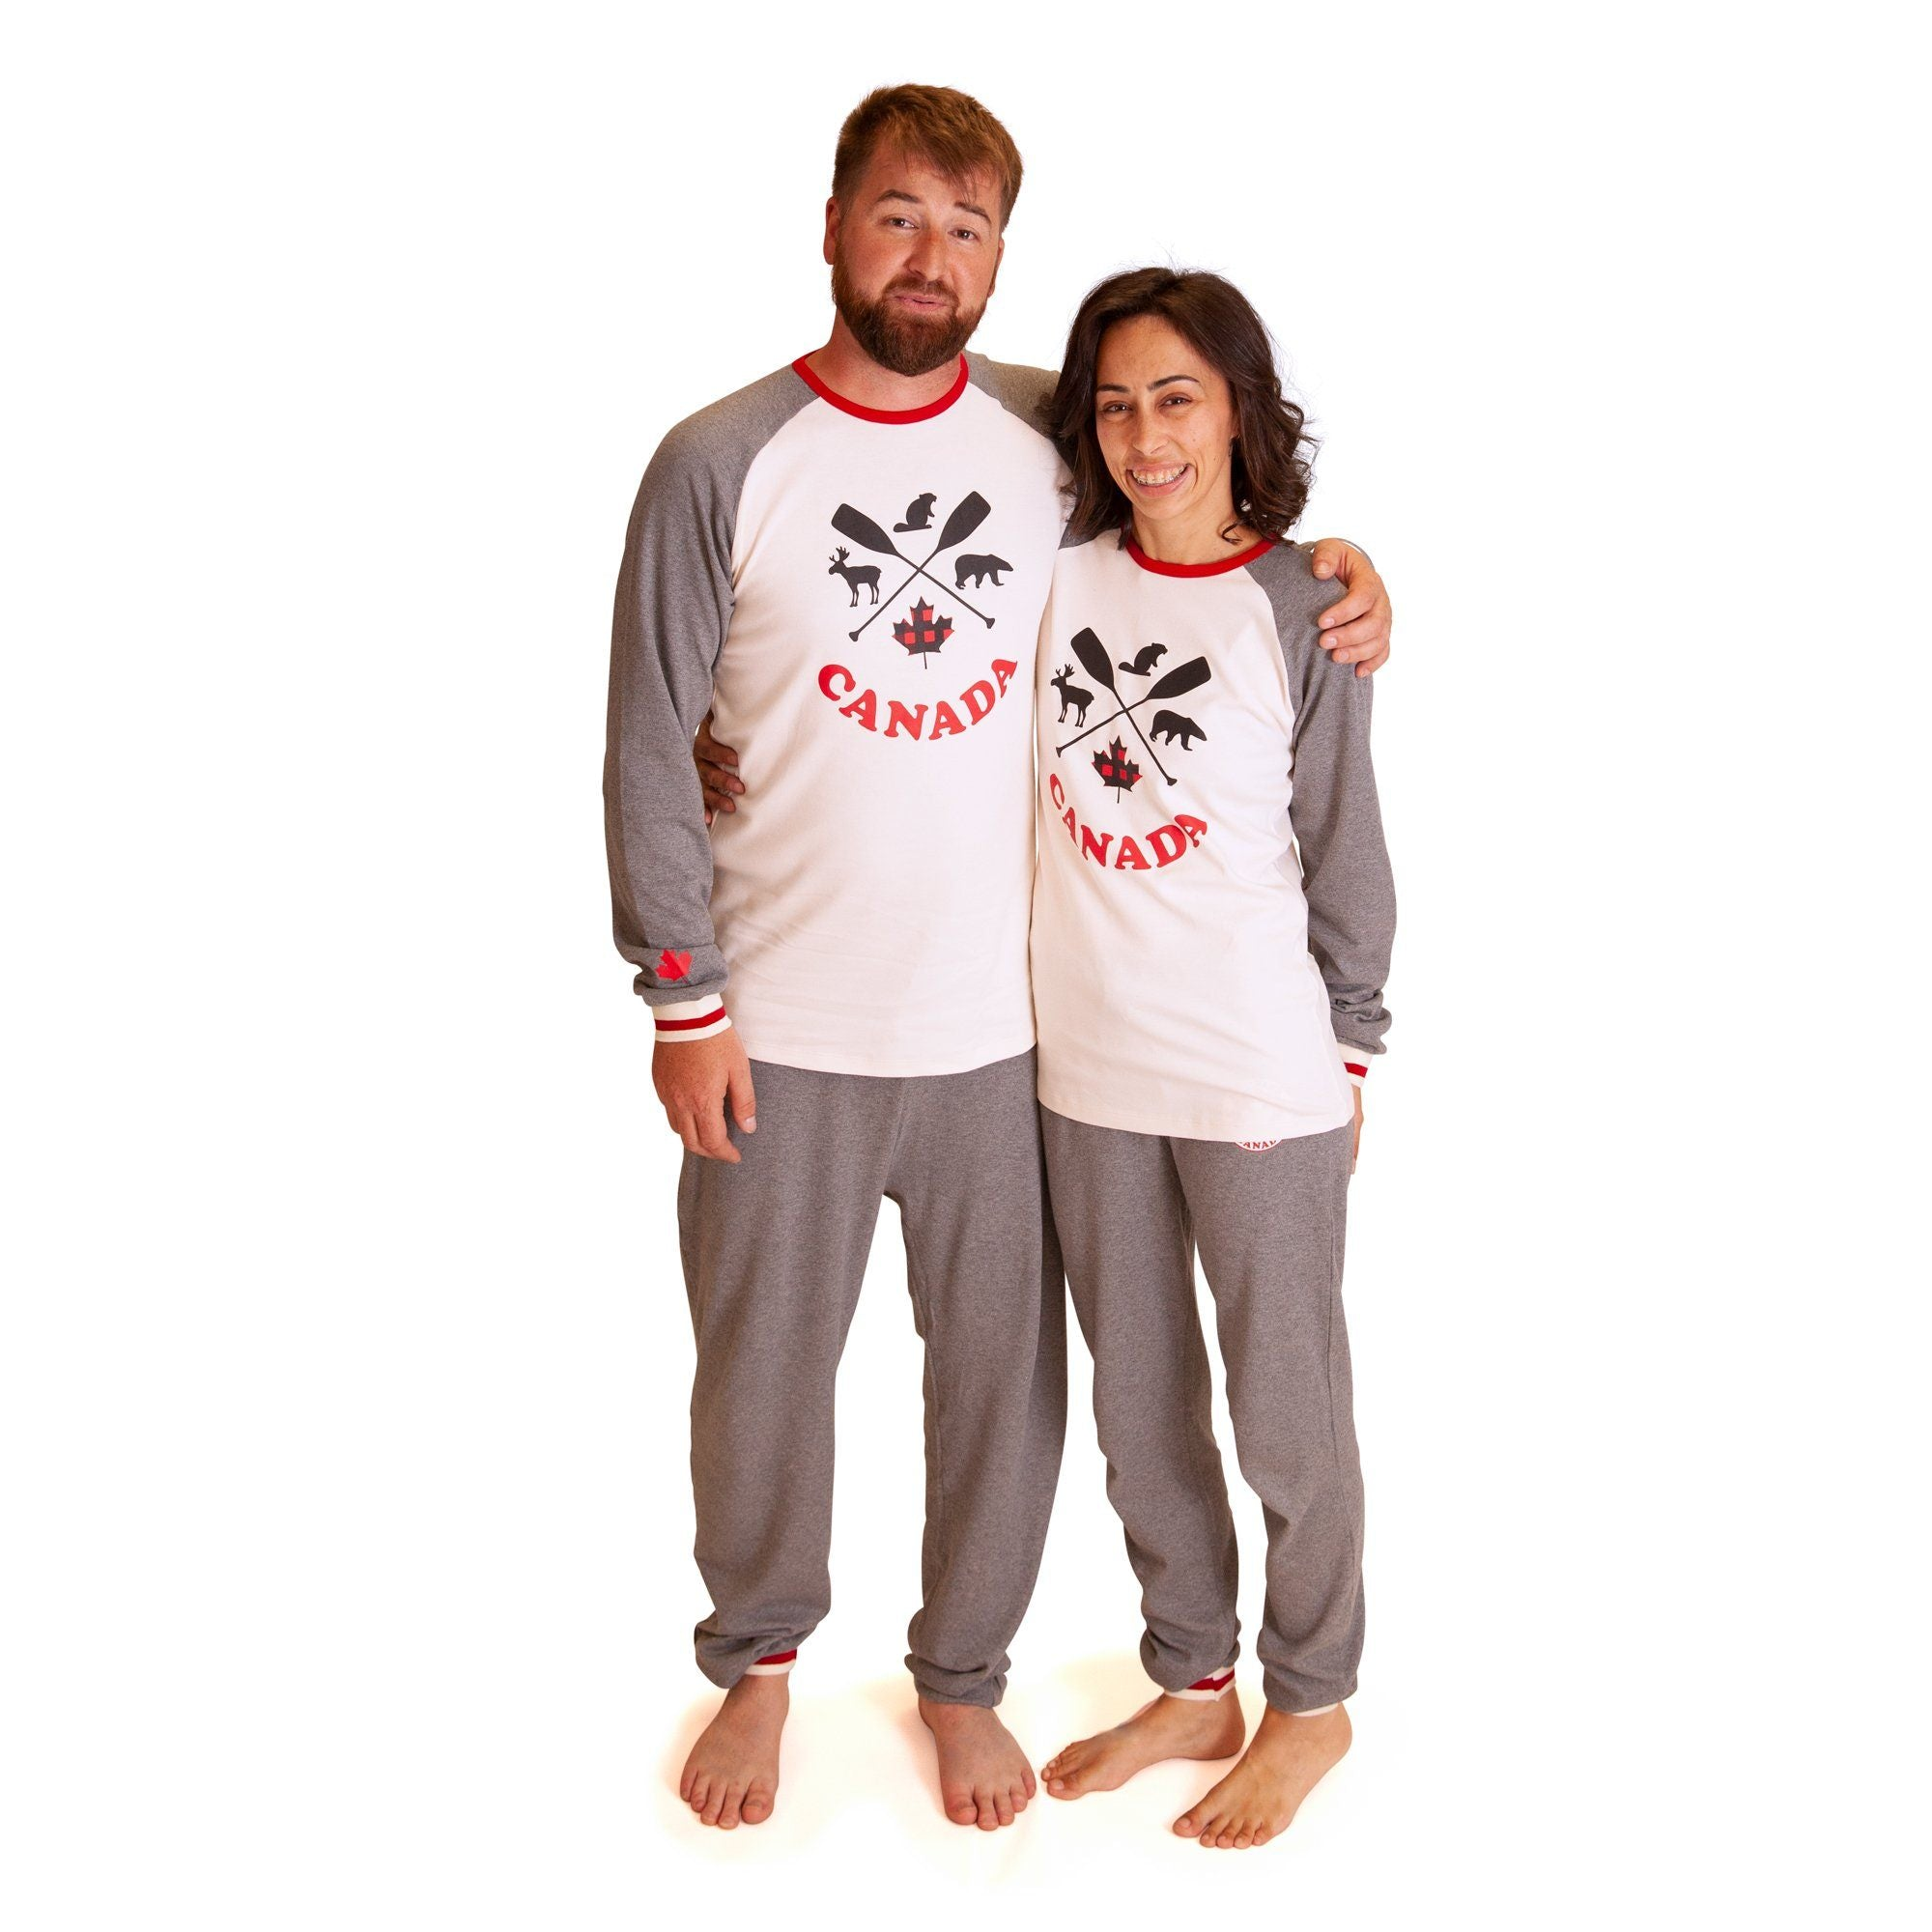 Iconic Canadian PJs for Adults